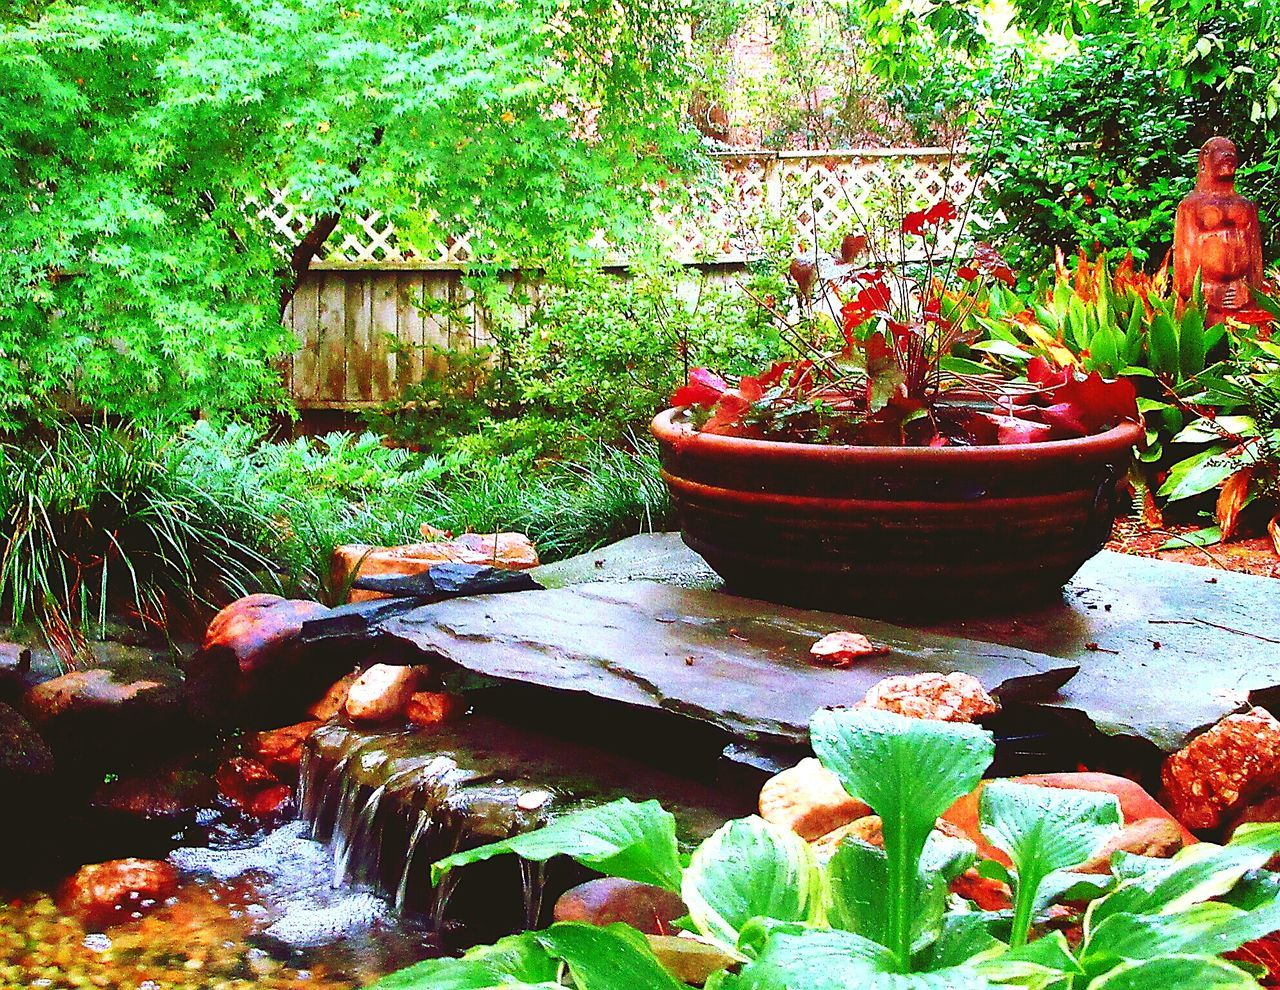 Oriental Style Waterscape Garden Colour Of Life Backyard Zen Diy Project Koi Pond In The Garden Koi Pond Waterfalls Asian Culture Plant Photography Flowers,Plants & Garden Two Green Thumbs Namasté Sessions Rejuvenated Mind Body And Soul By Nature Spiritual Nature Meditation Tranquil Scene Outdoors Waterfalls Nature Heals Soothing Zen Yardscape Connected By Travel Lost In The Landscape